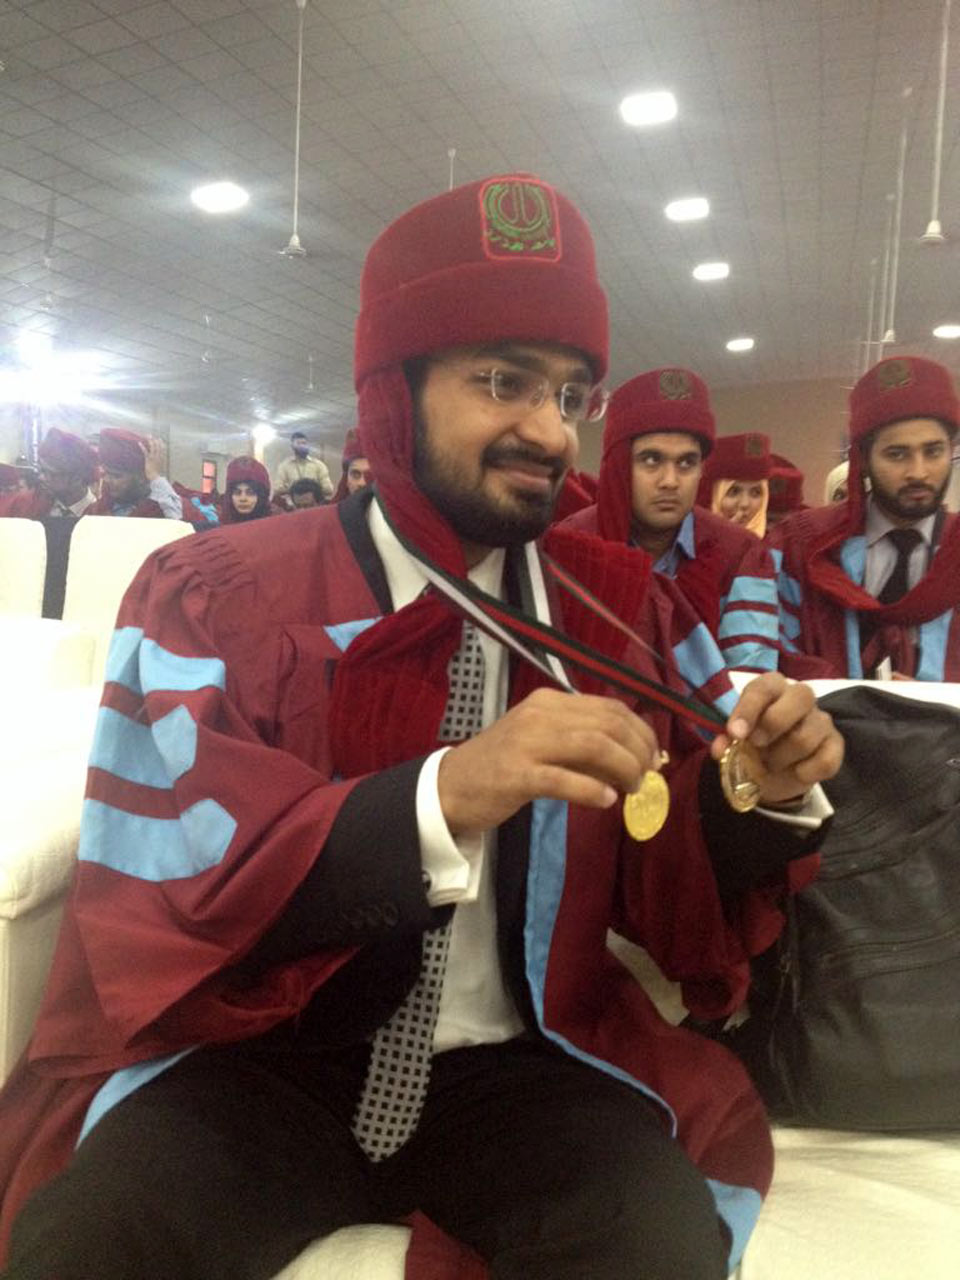 A fresh graduate is showing his Gold Medal to his friends